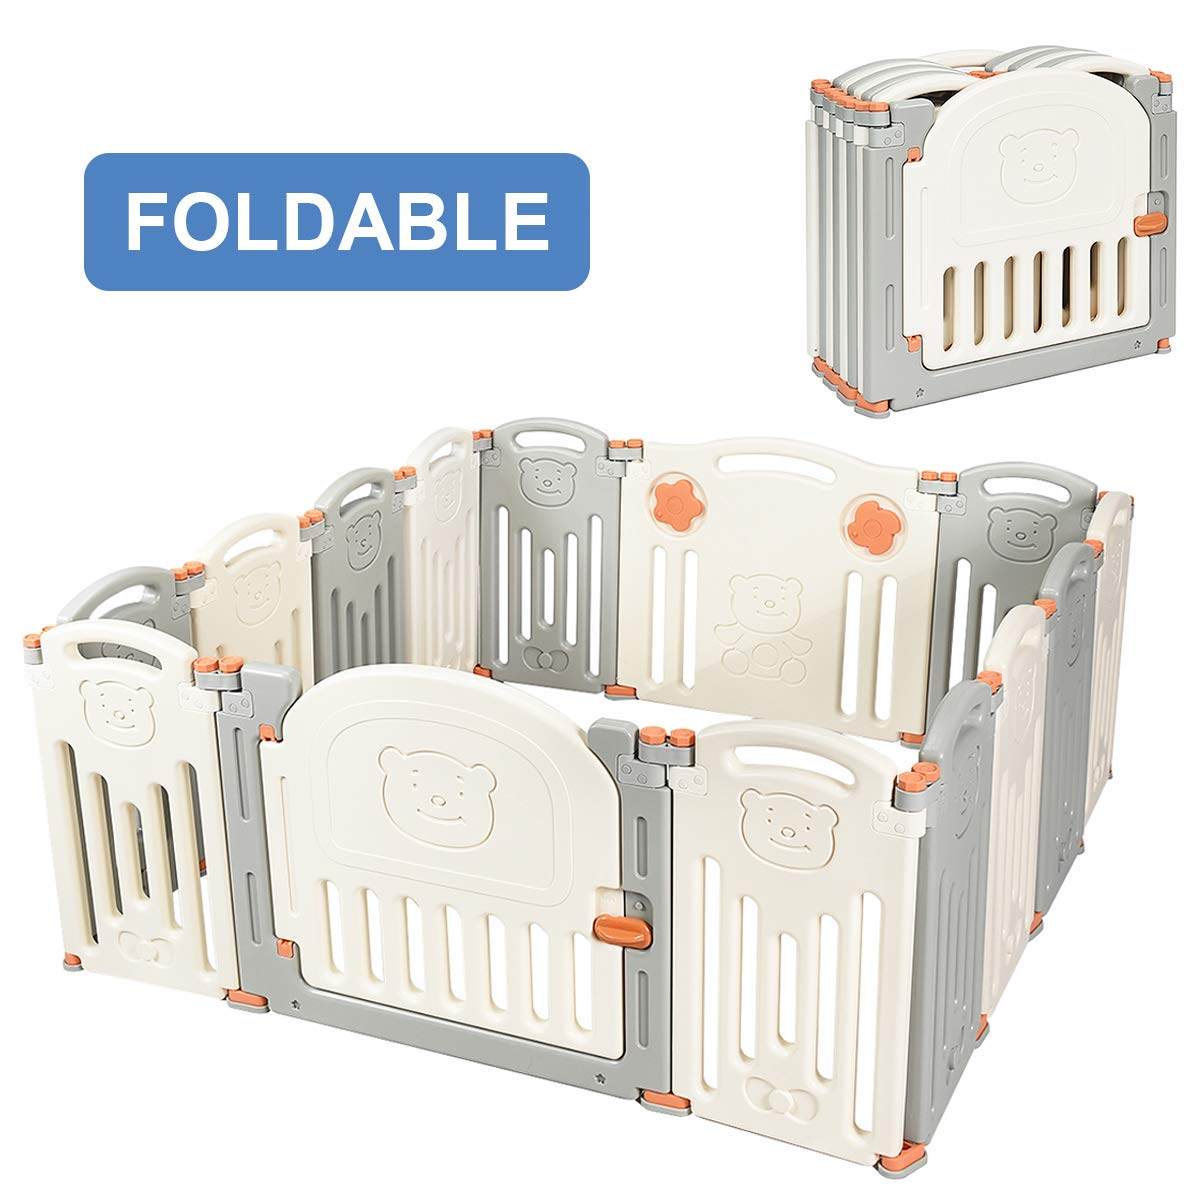 Costzon Baby Playpen, 14-Panel Foldable Kids Safety Activity Center Playard w/Locking Gate, Non-Slip Rubber Mats, Adjustable Shape, Portable Design for Indoor Outdoor Use (Beige + Gray, 14-Panel)